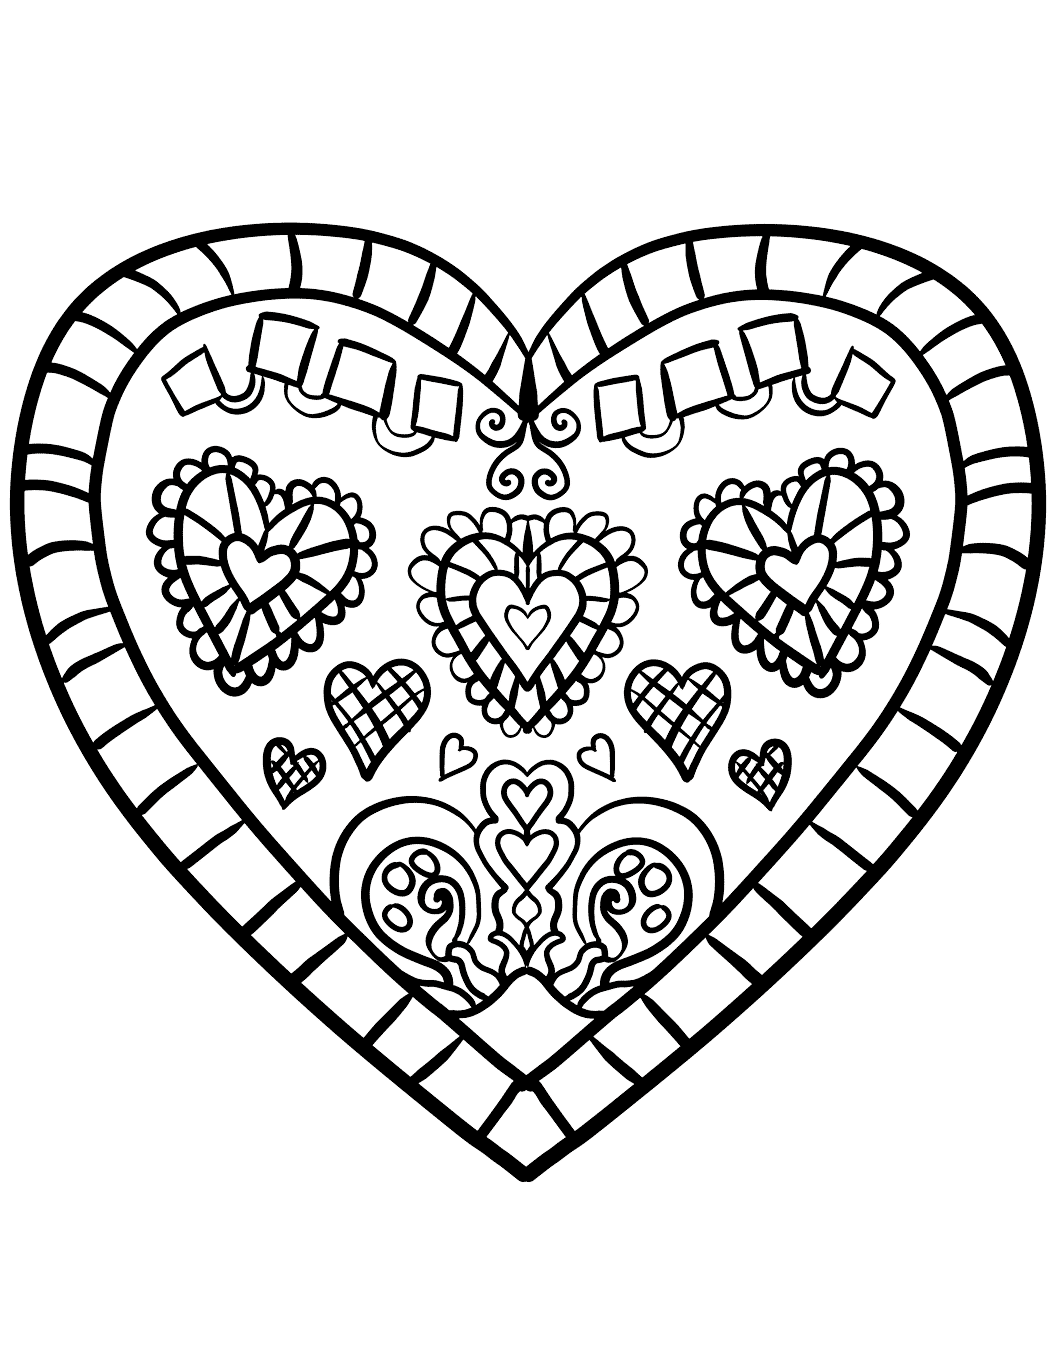 coloring heart for kids hearts coloring pages for adults best coloring pages for heart kids for coloring